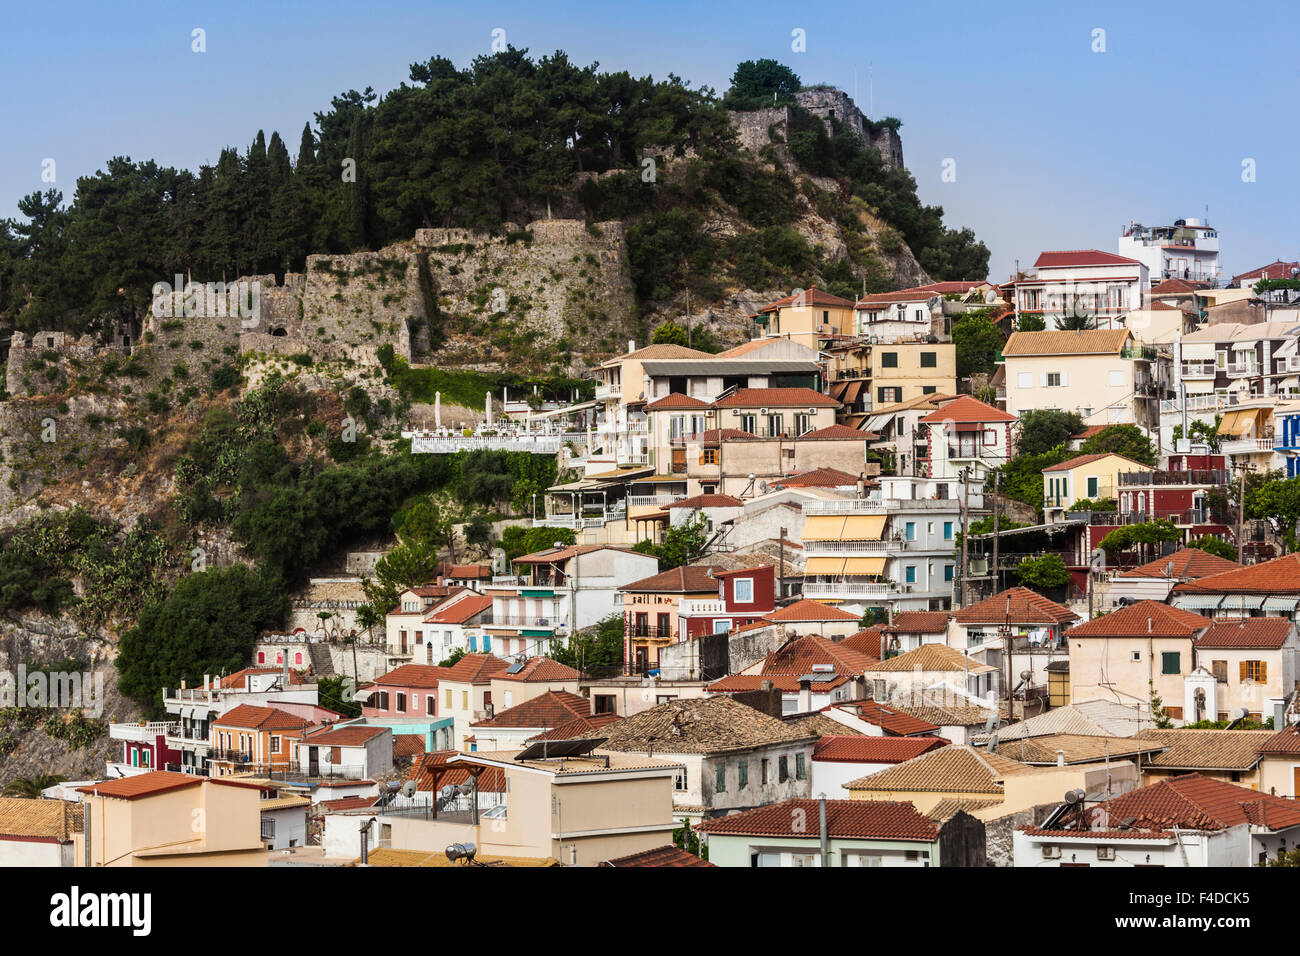 Greece, Epirus, Parga, elevated view of town and Venetian Castle, morning - Stock Image